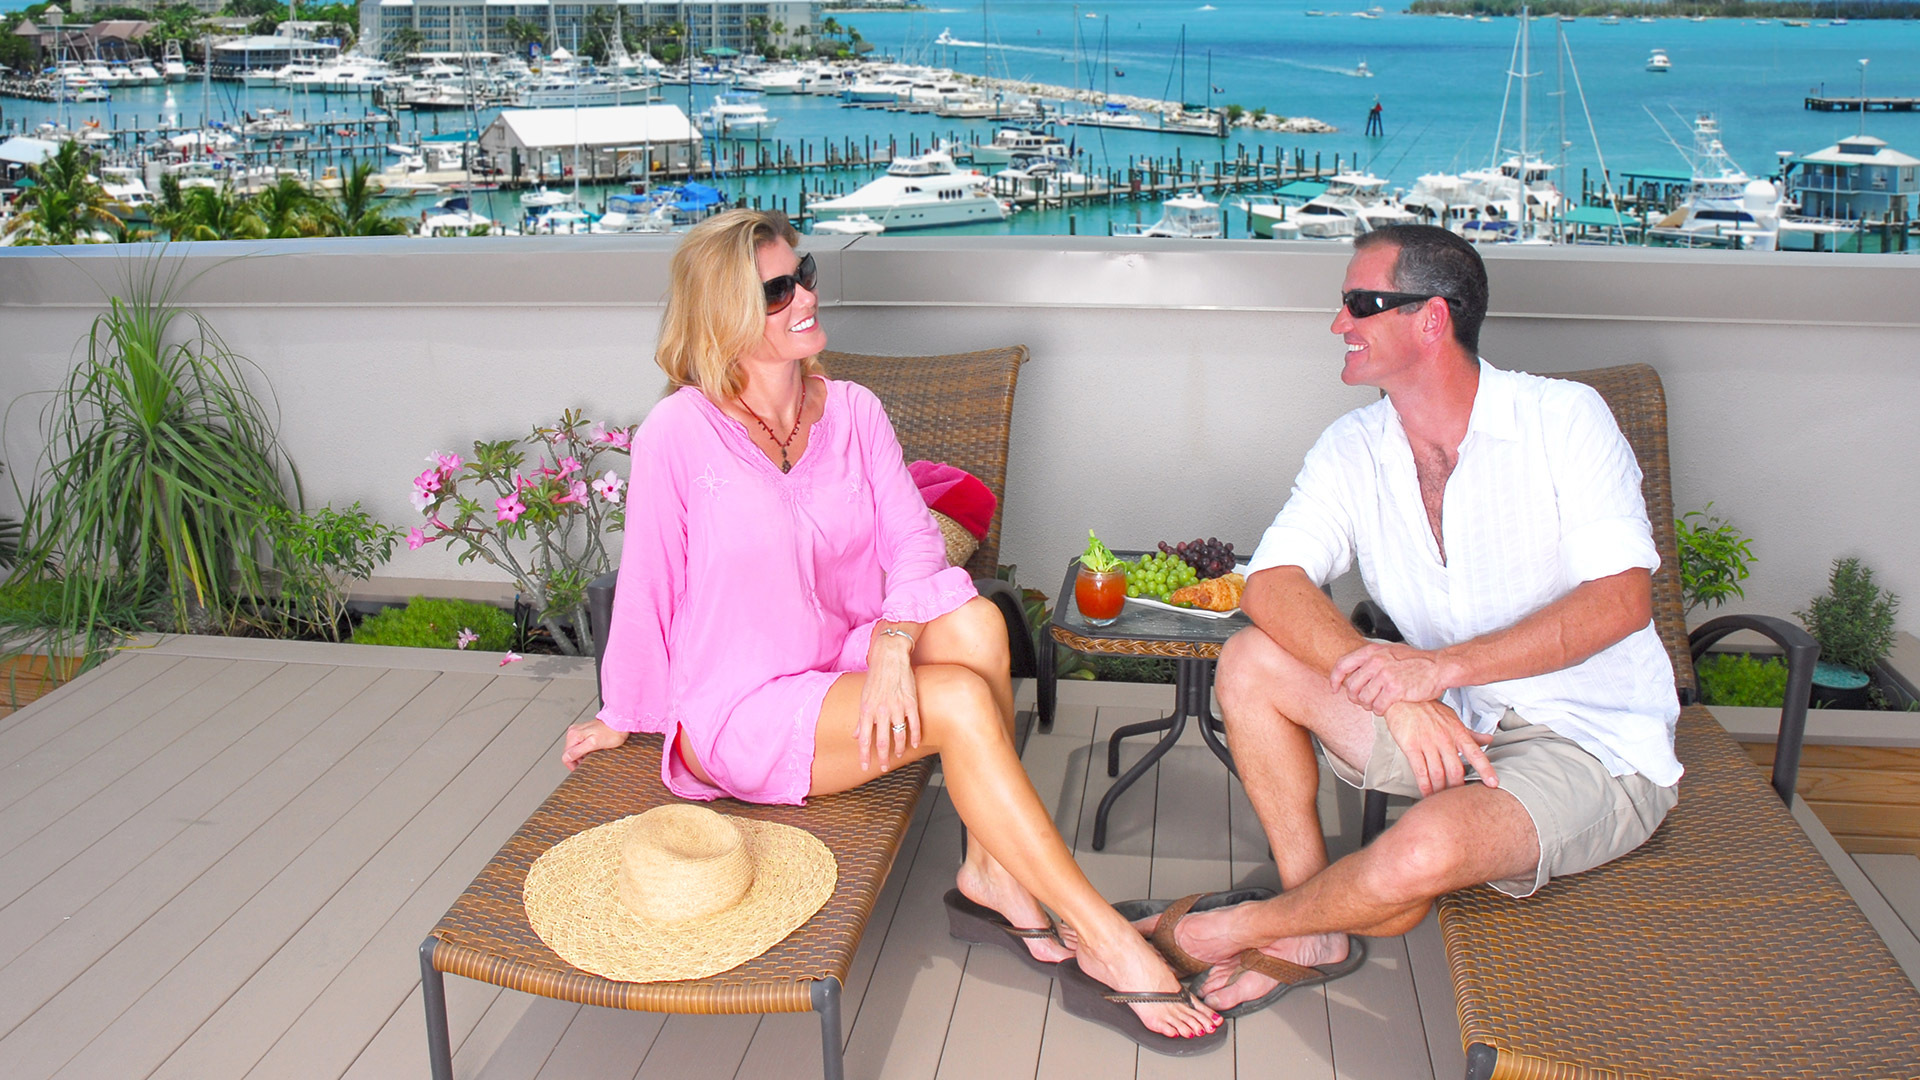 couple sitting outdoors on lounge chairs on rooftop deck with key west harbor and boats in background